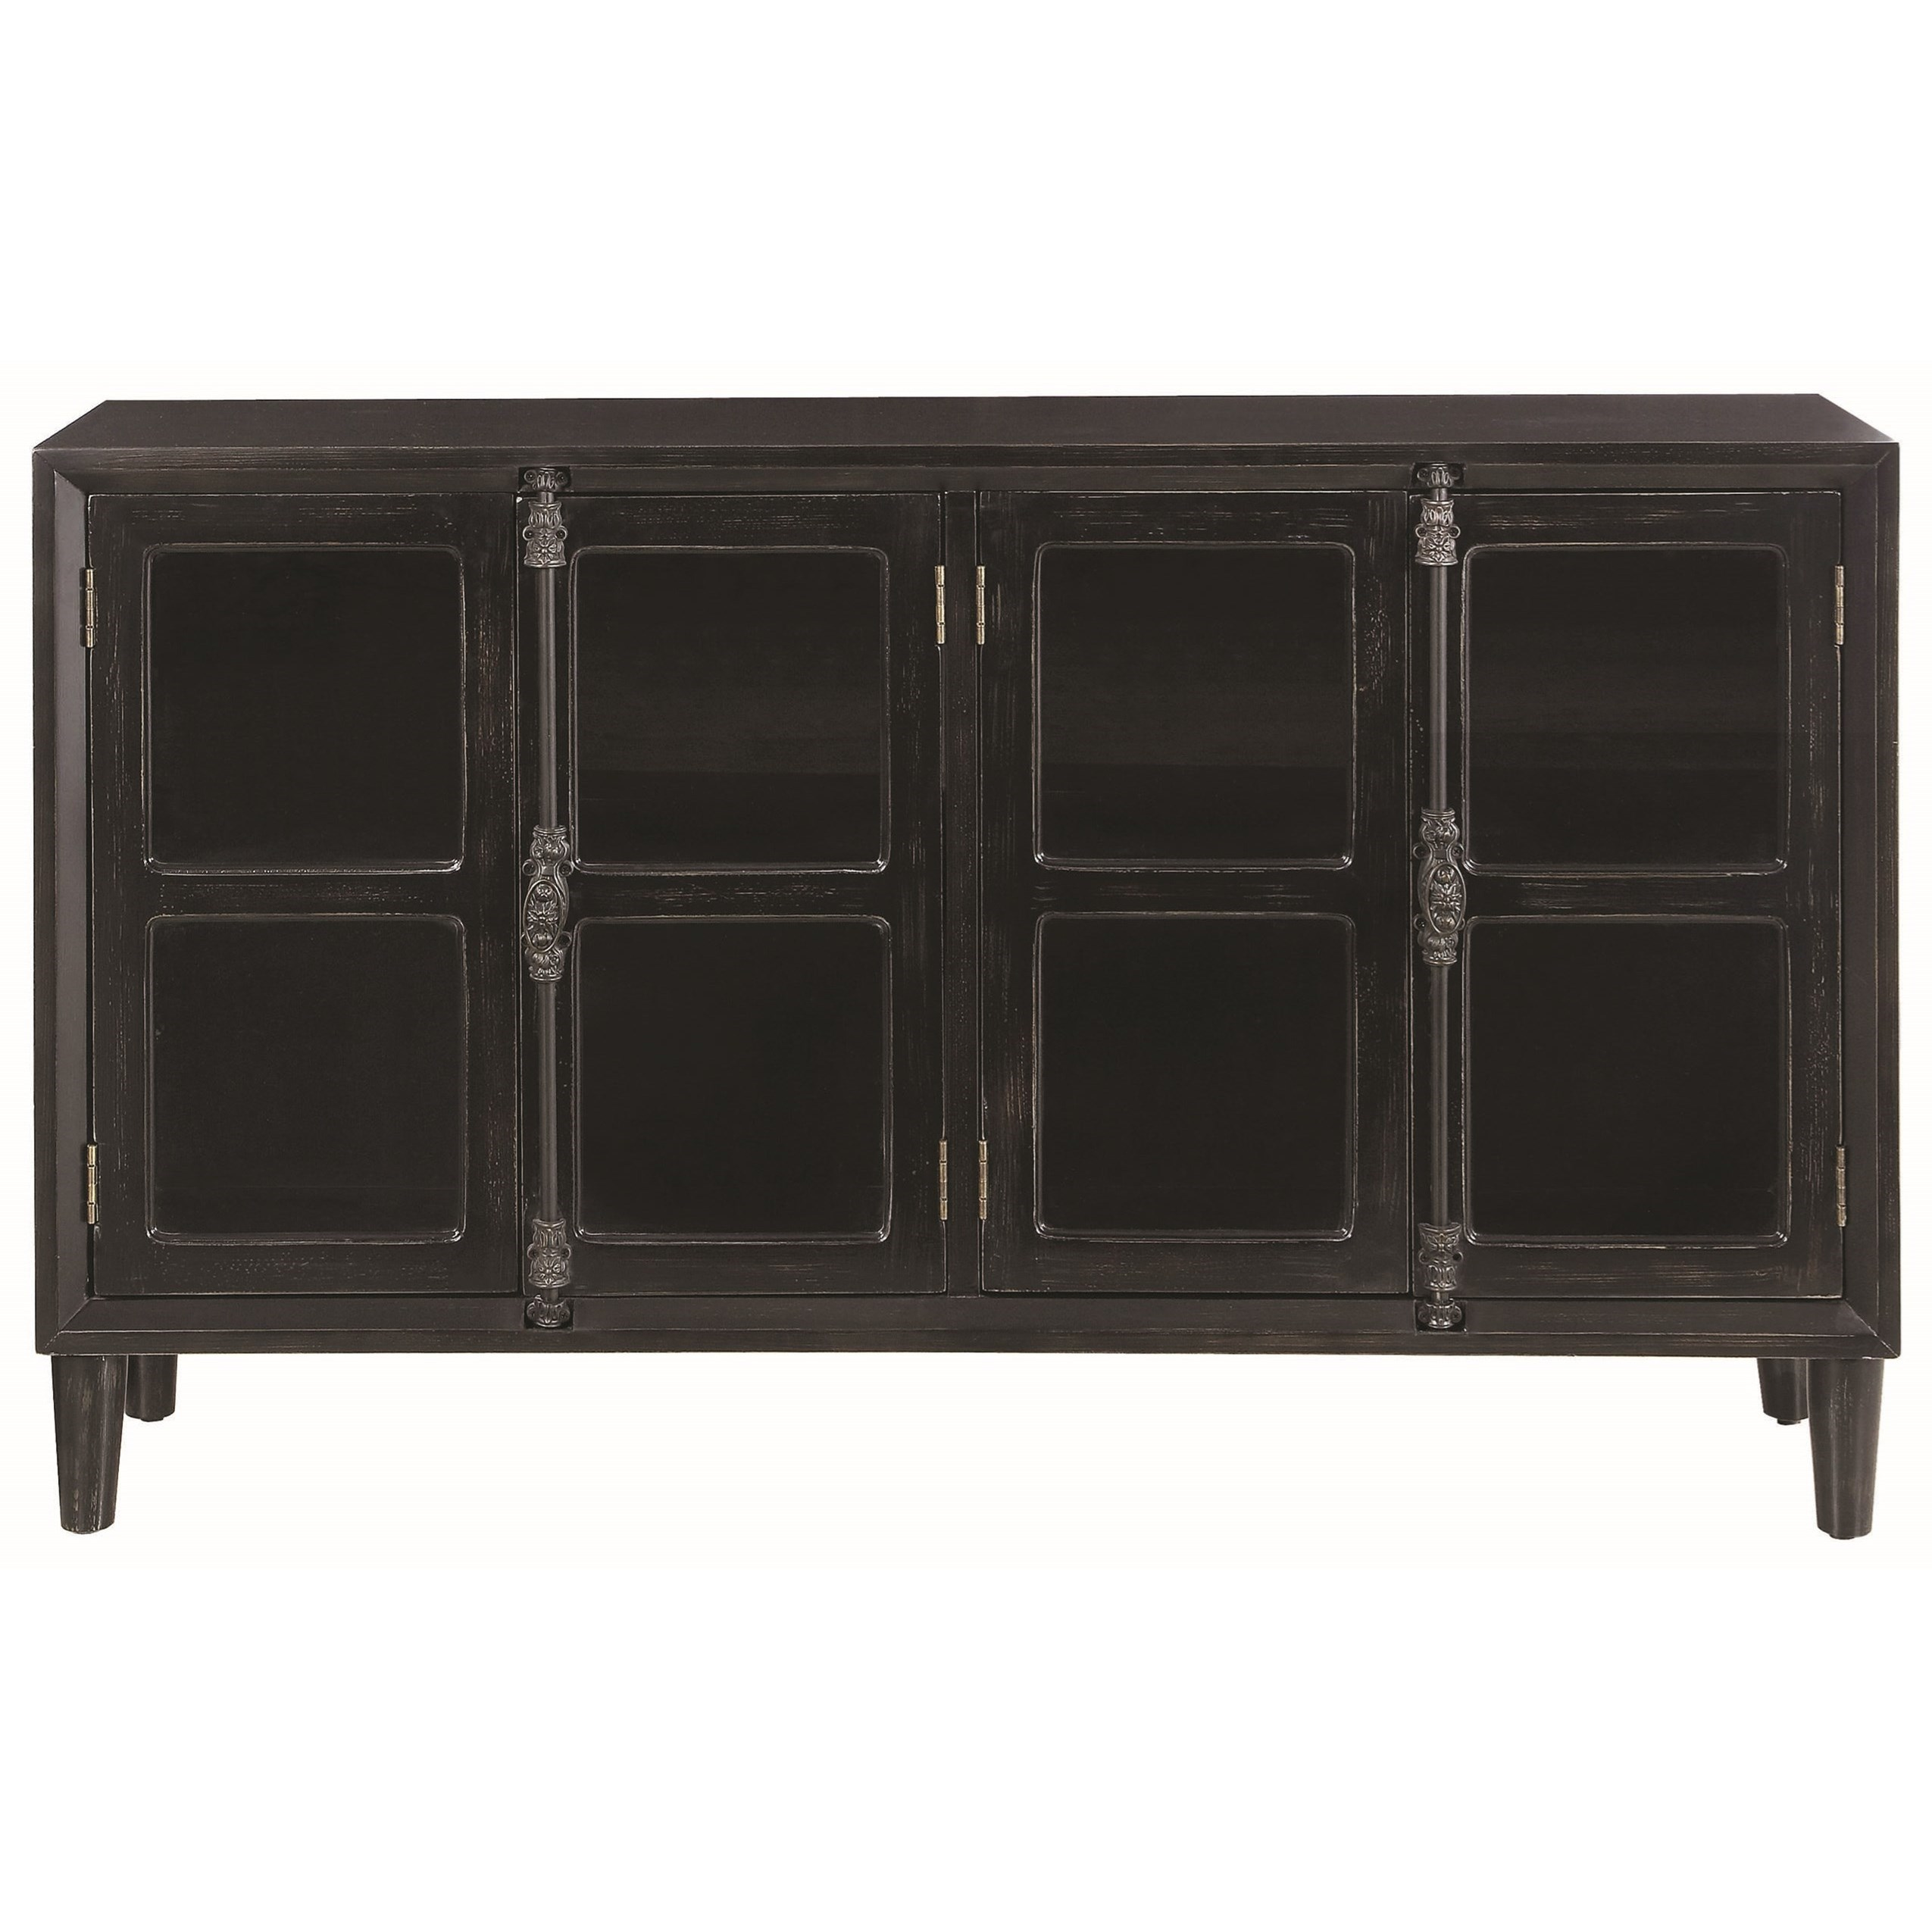 black accent cabinet with glass doors coaster wolf and gardiner products color cabinets table small bedside lamps storage counter height kitchen set target threshold oak lamp